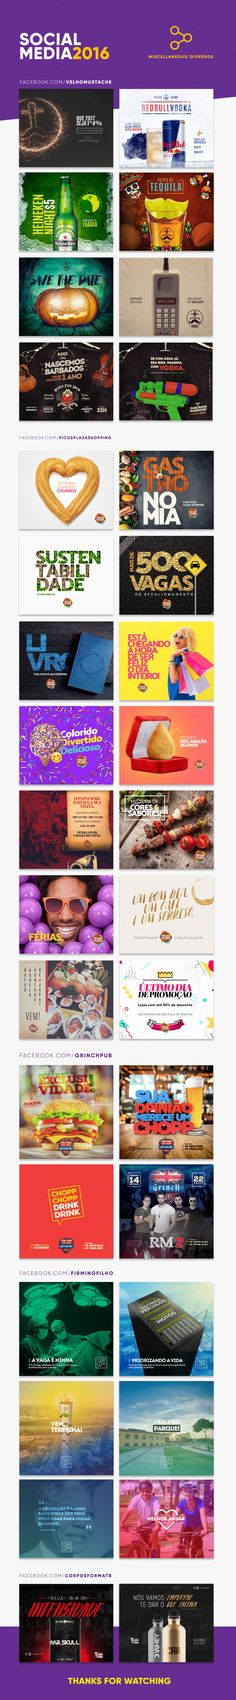 Social Media Posts - 2016 on Behance